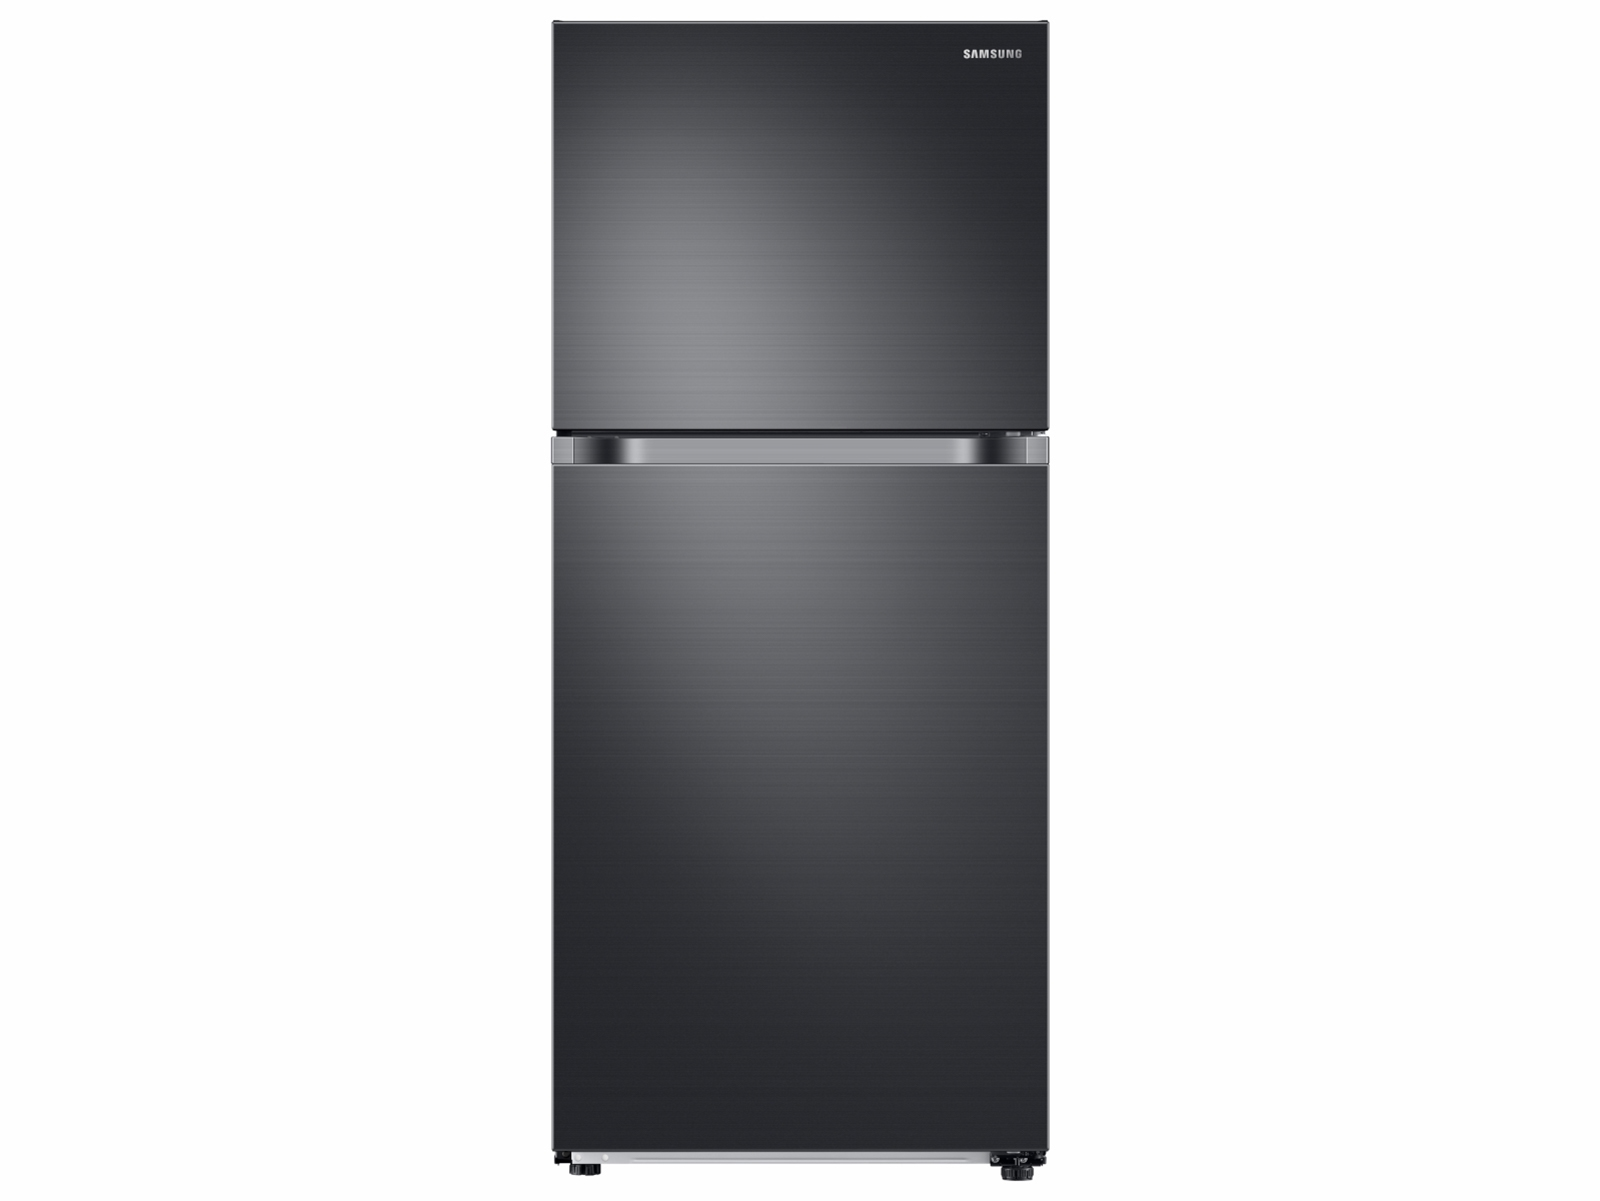 18 cu. ft. Top Freezer Refrigerator with FlexZone and Ice Maker in Black Stainless Steel